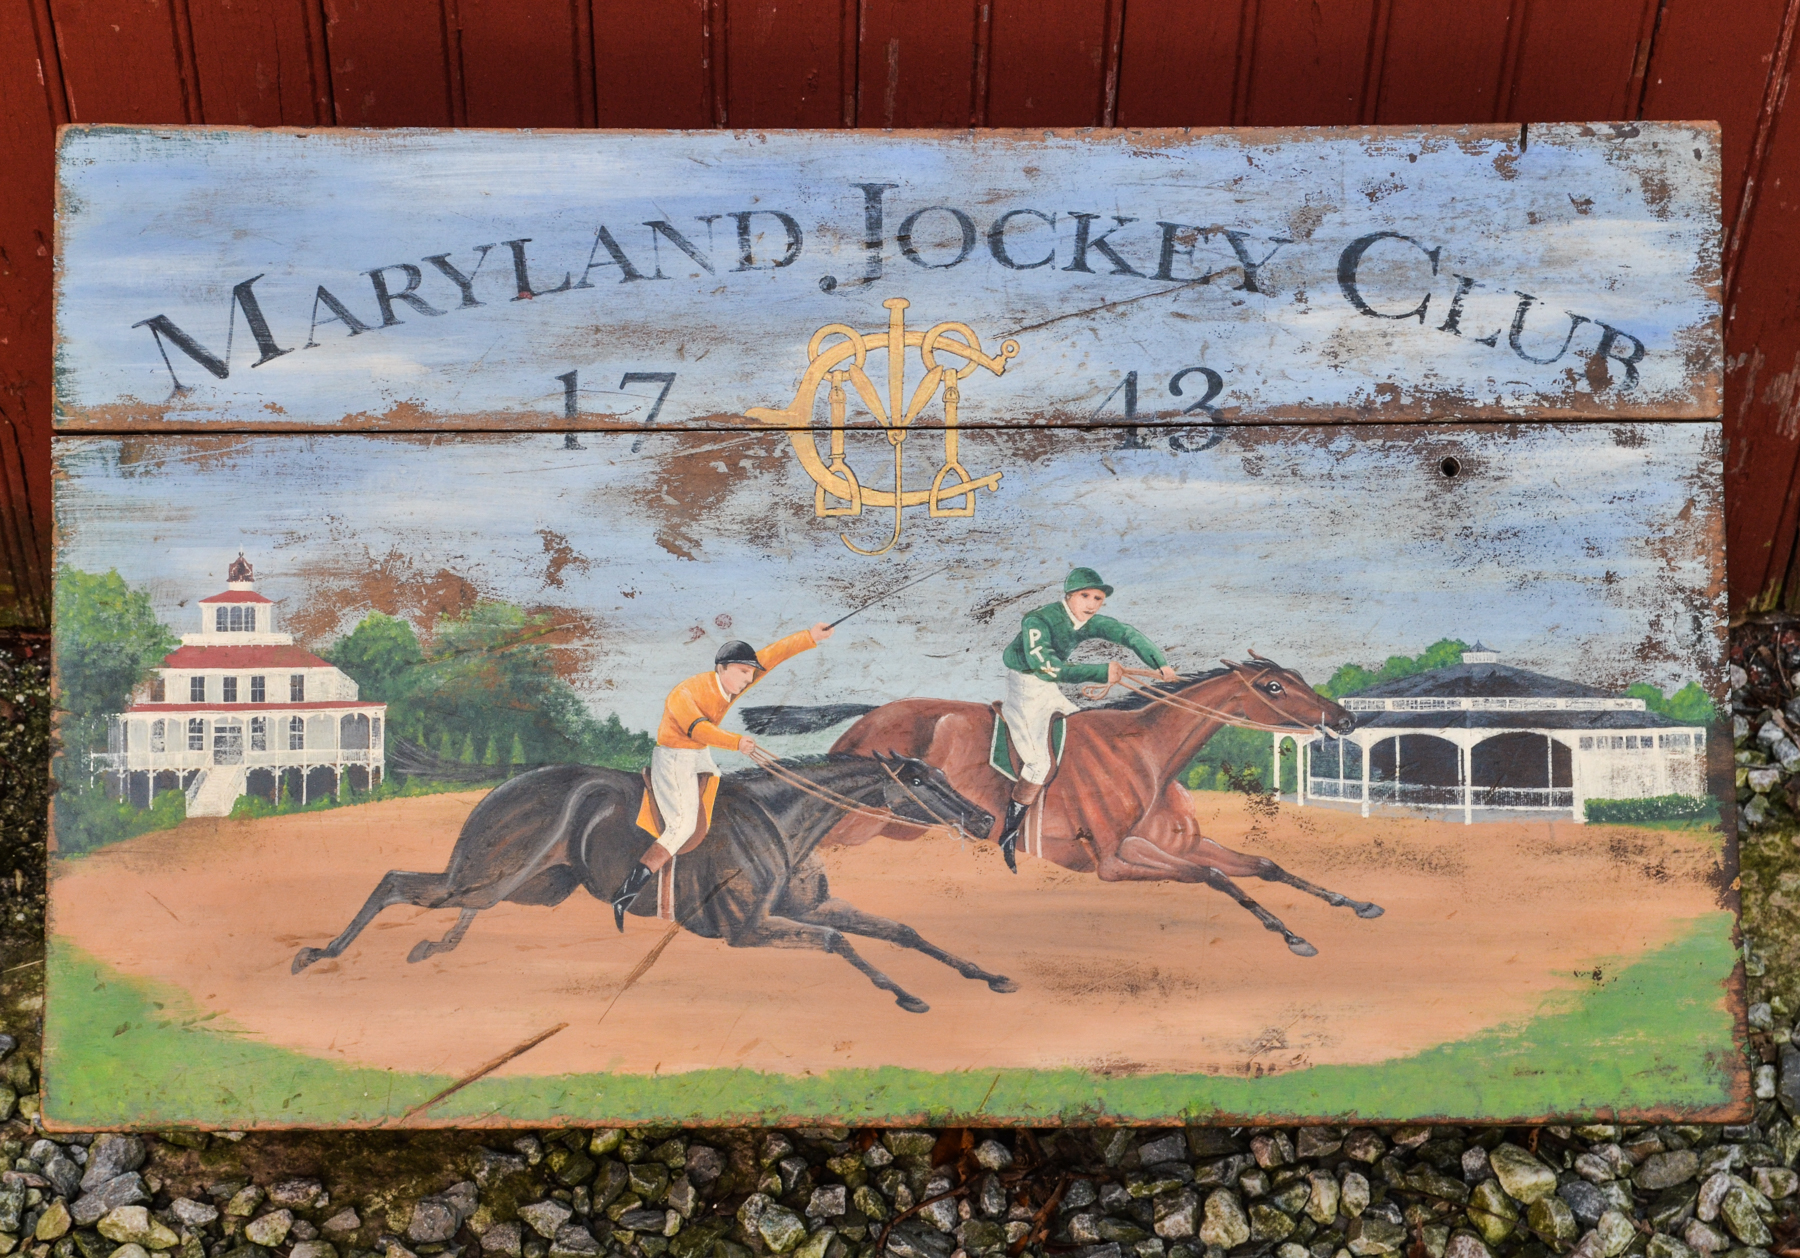 Maryland Jockey Club Box 2